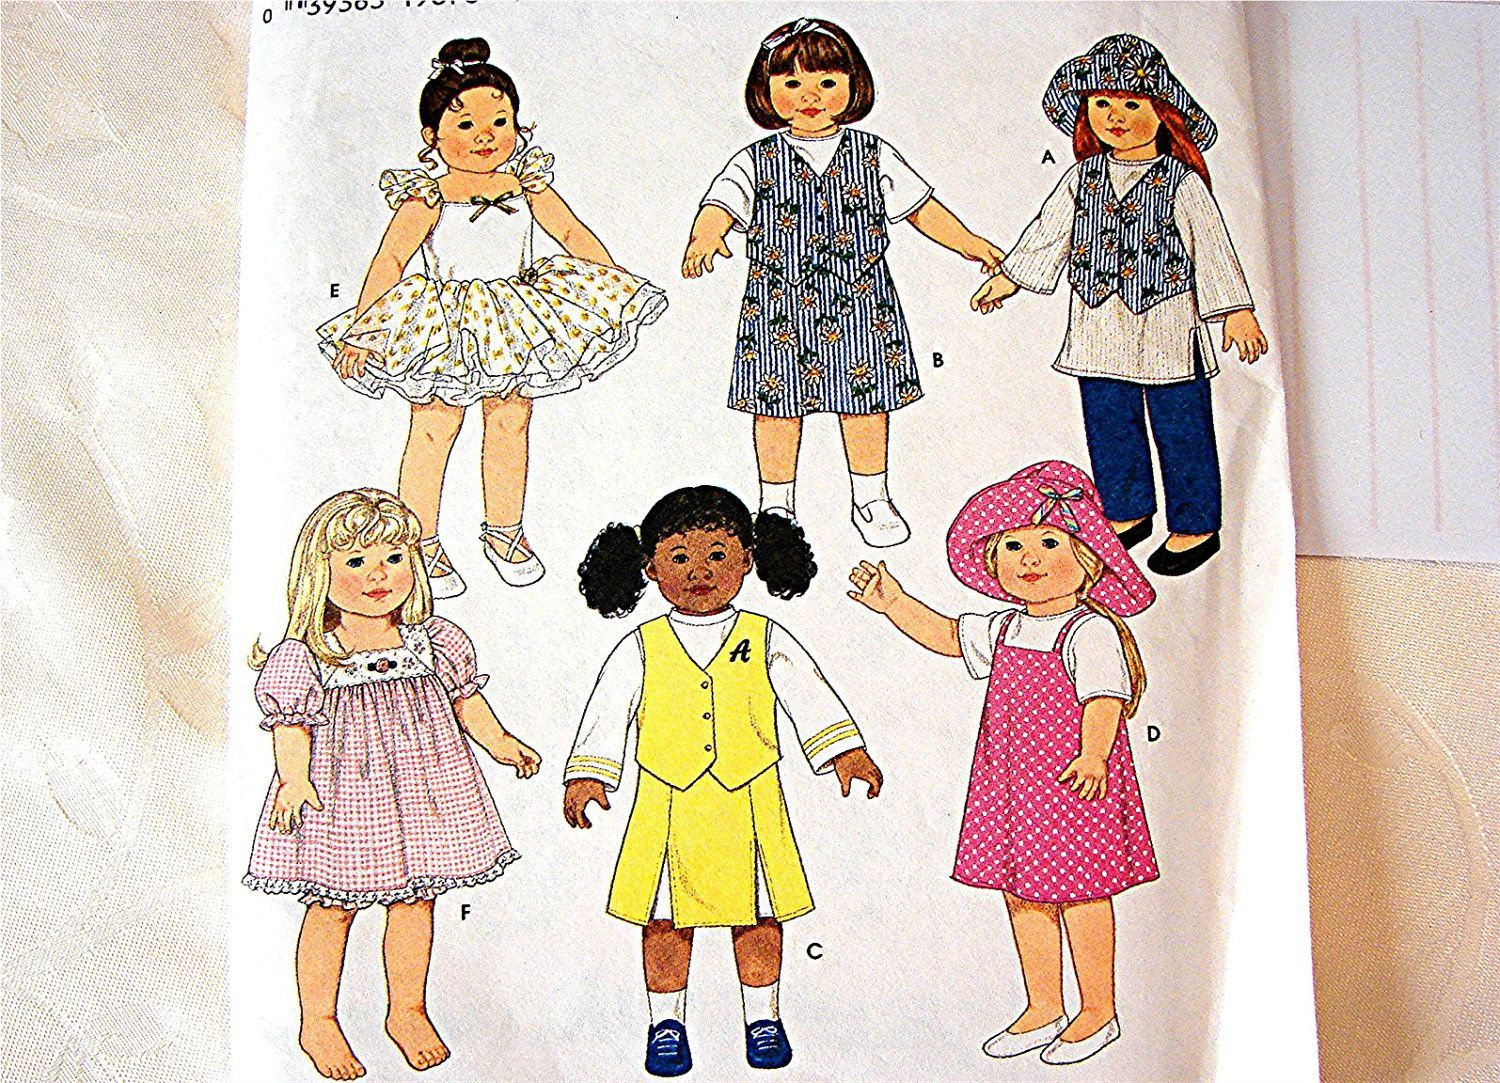 Simplicity 18 inch Doll Clothes Sewing Pattern Ballerina Tutu Cheerleader Dress. $14.50, via Etsy. #18inchcheerleaderclothes Simplicity 18 inch Doll Clothes Sewing Pattern Ballerina Tutu Cheerleader Dress. $14.50, via Etsy. #18inchcheerleaderclothes